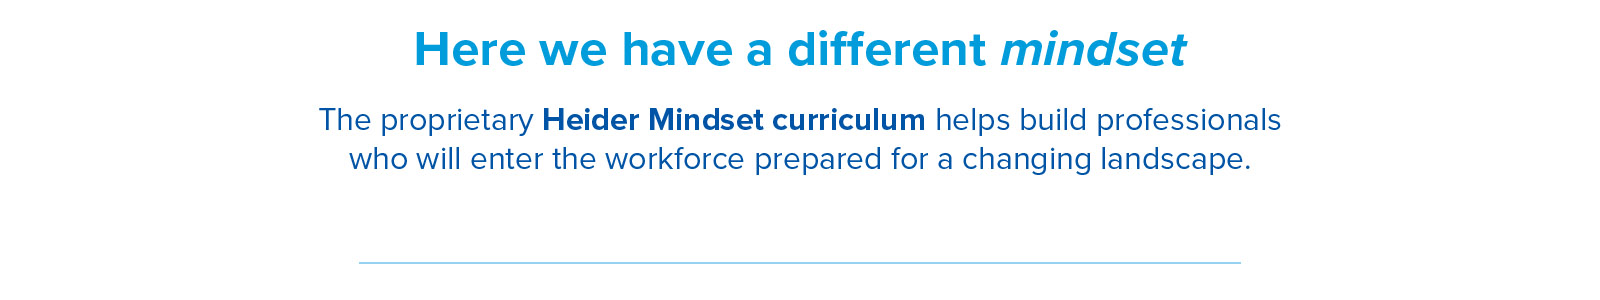 Here we have a different mindset. The proprietary Heider Mindset curriculum helps build professionals who will enter the workforce prepared for a changing landscape.